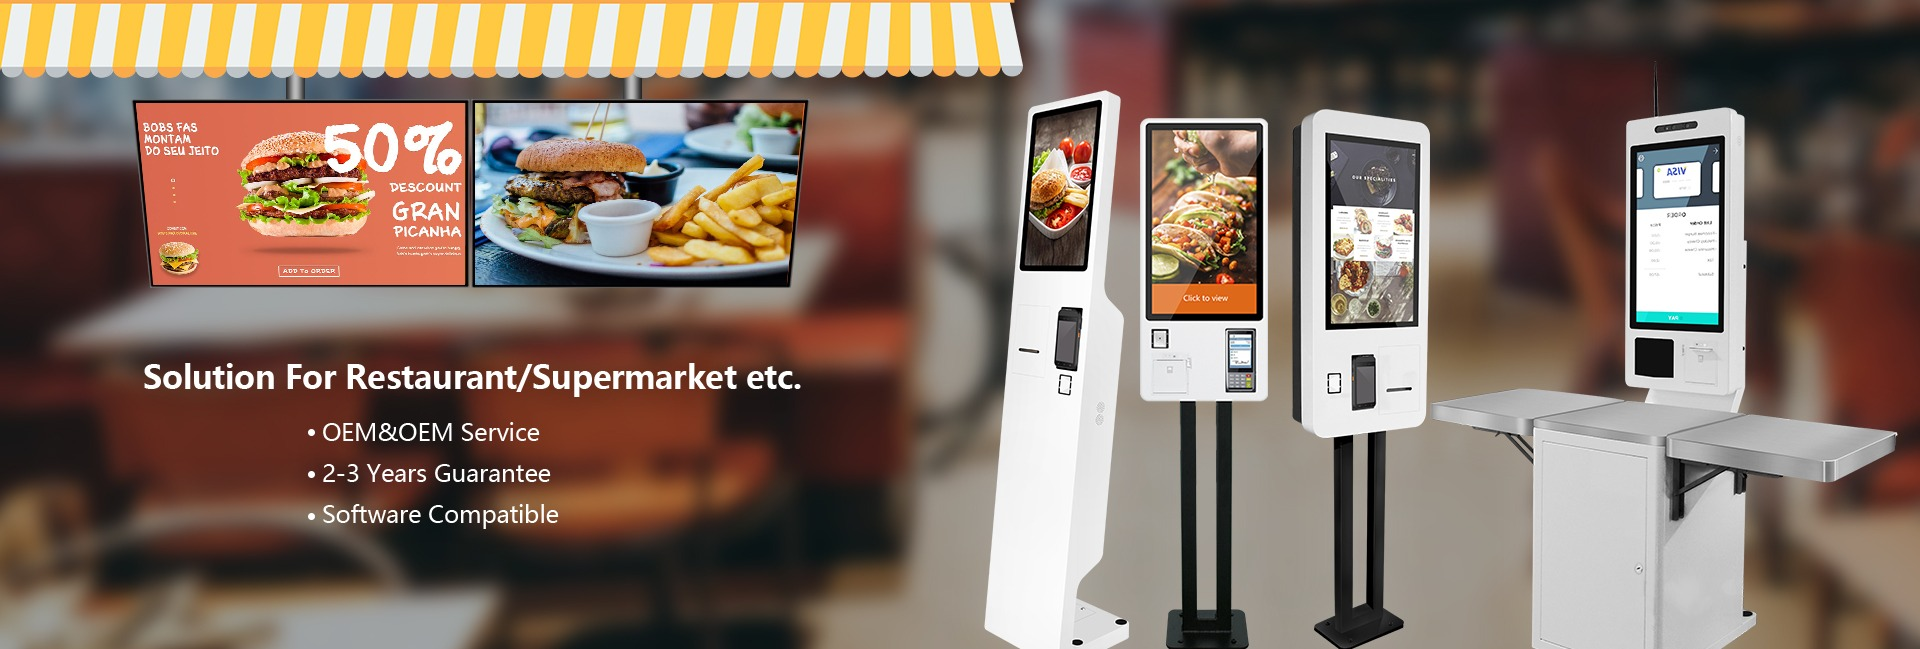 restaurant menu ordering system Digital Screens and self order kiosk